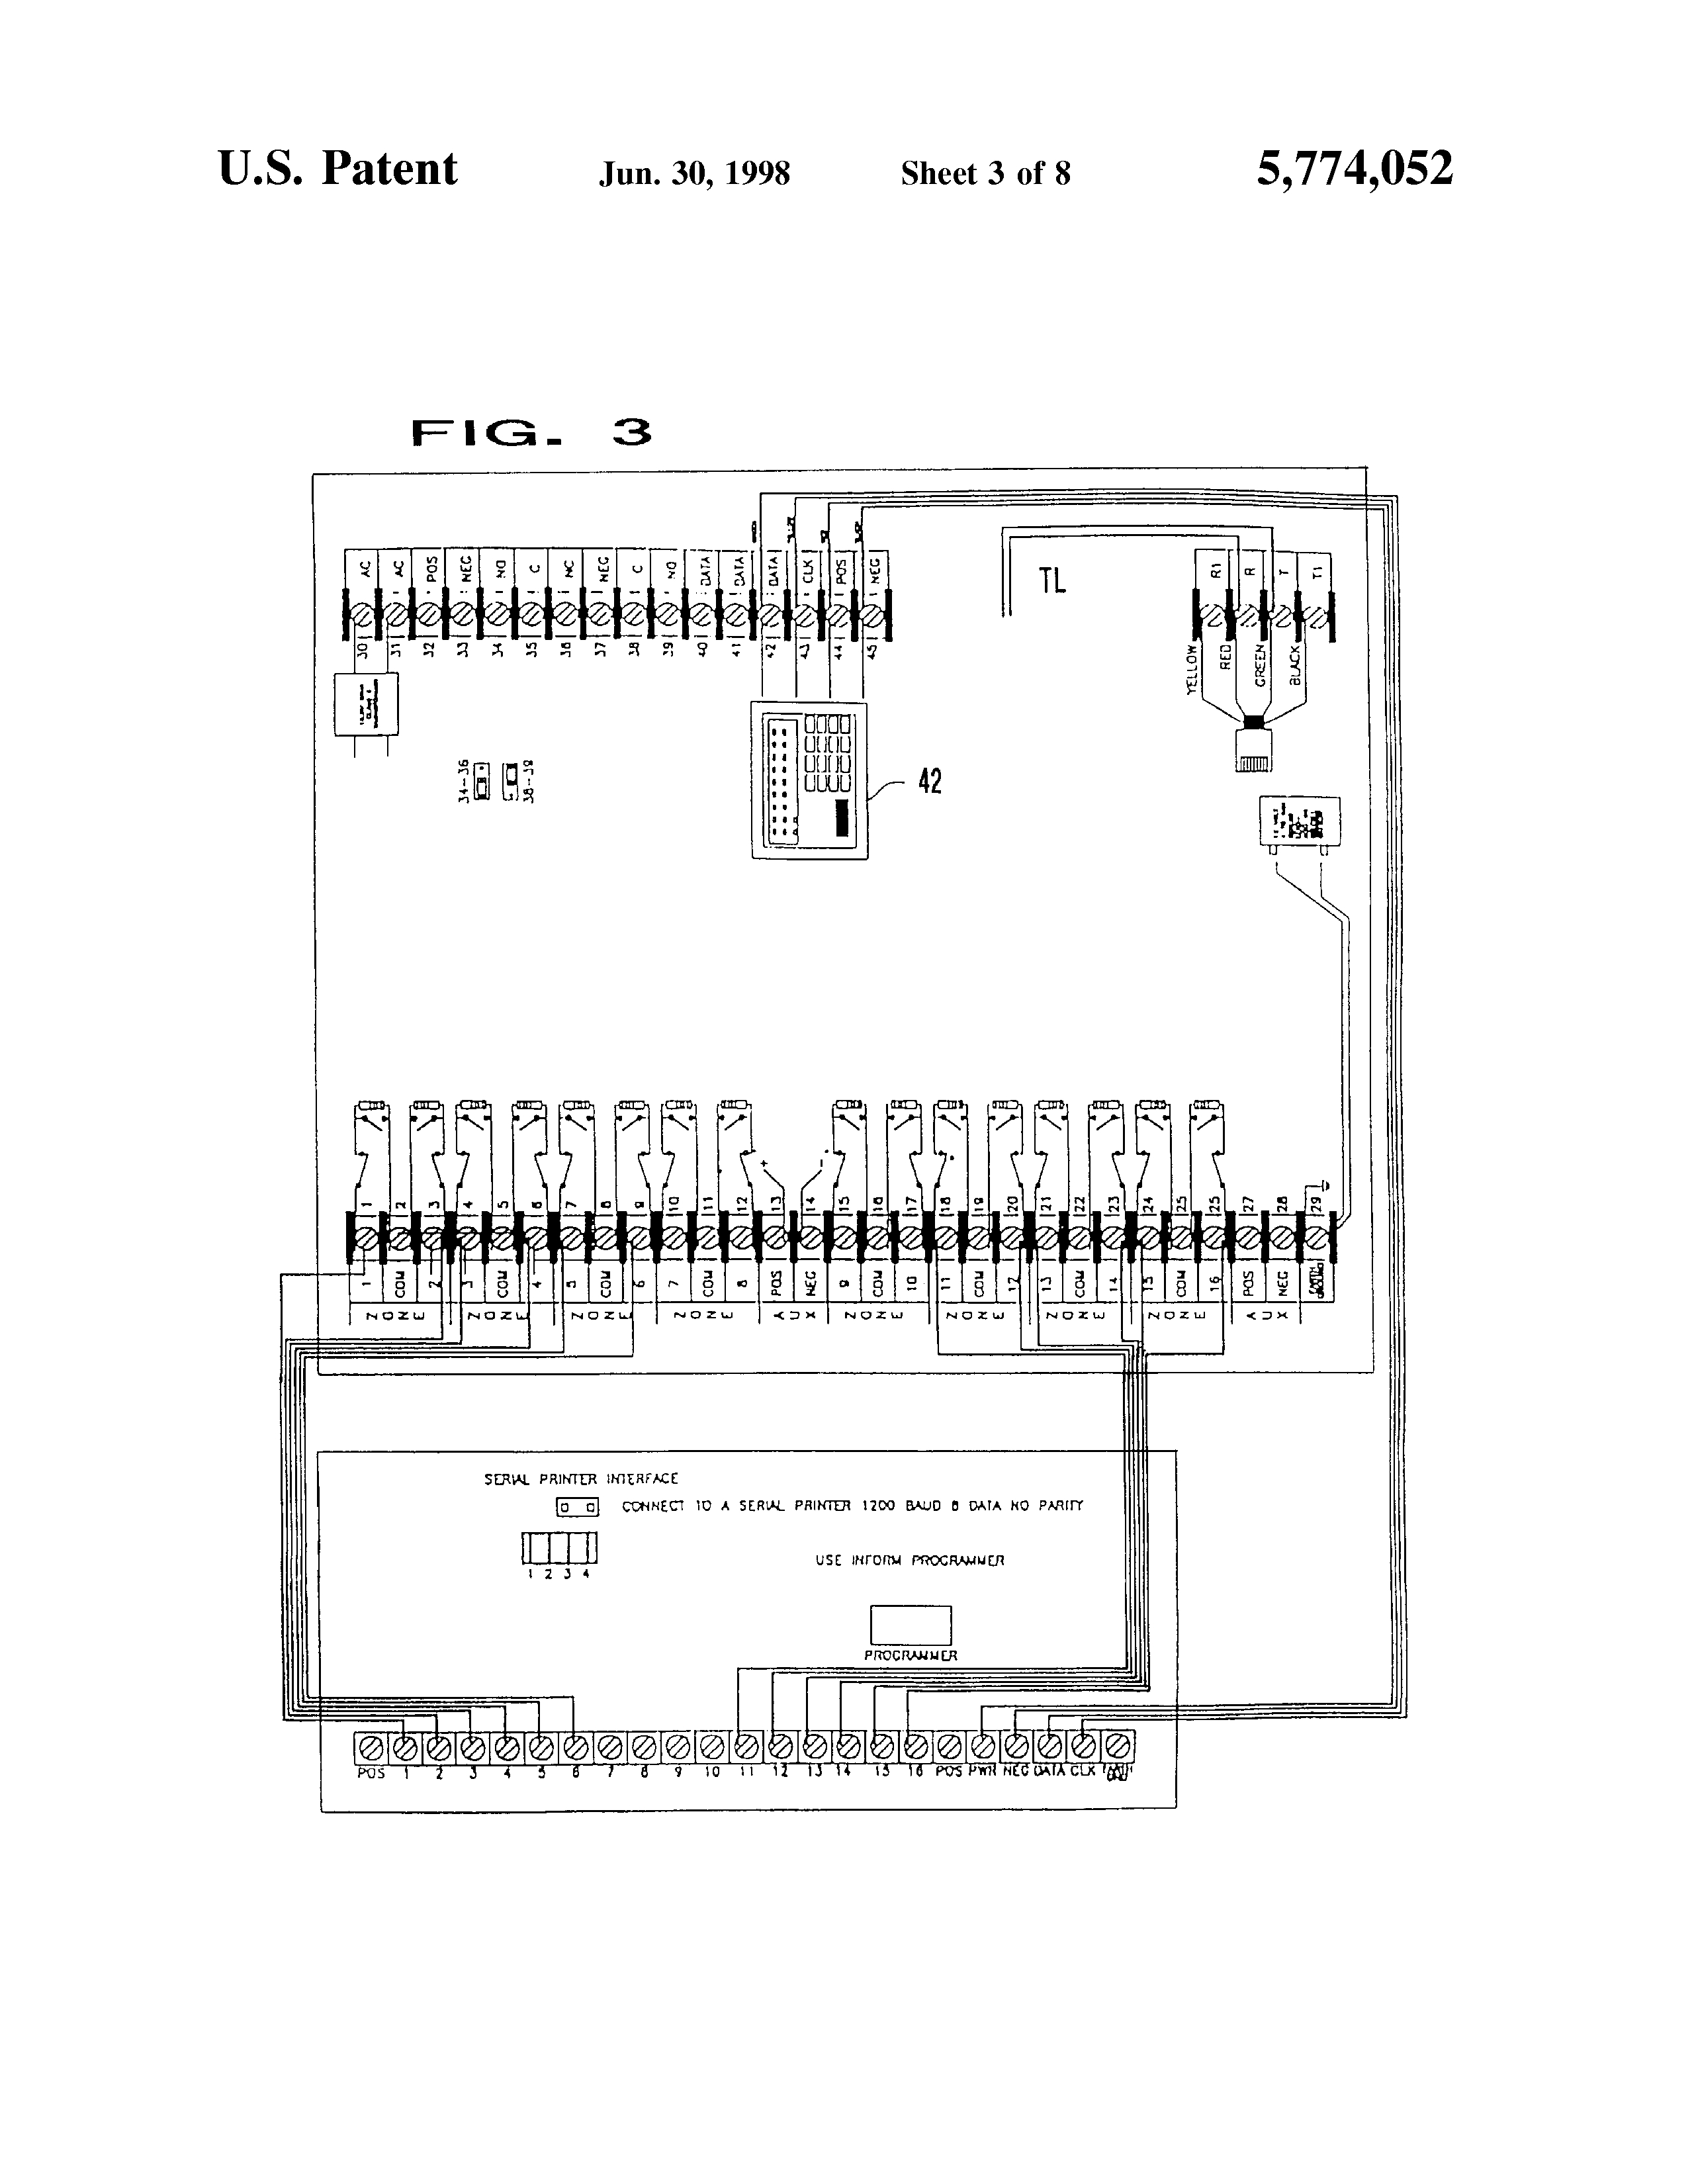 diebold atm alarm wiring diagram Download-Diebold atm Alarm Wiring Diagram Unique Patent Us Monitoring and Alerting System for Buildings 18-r